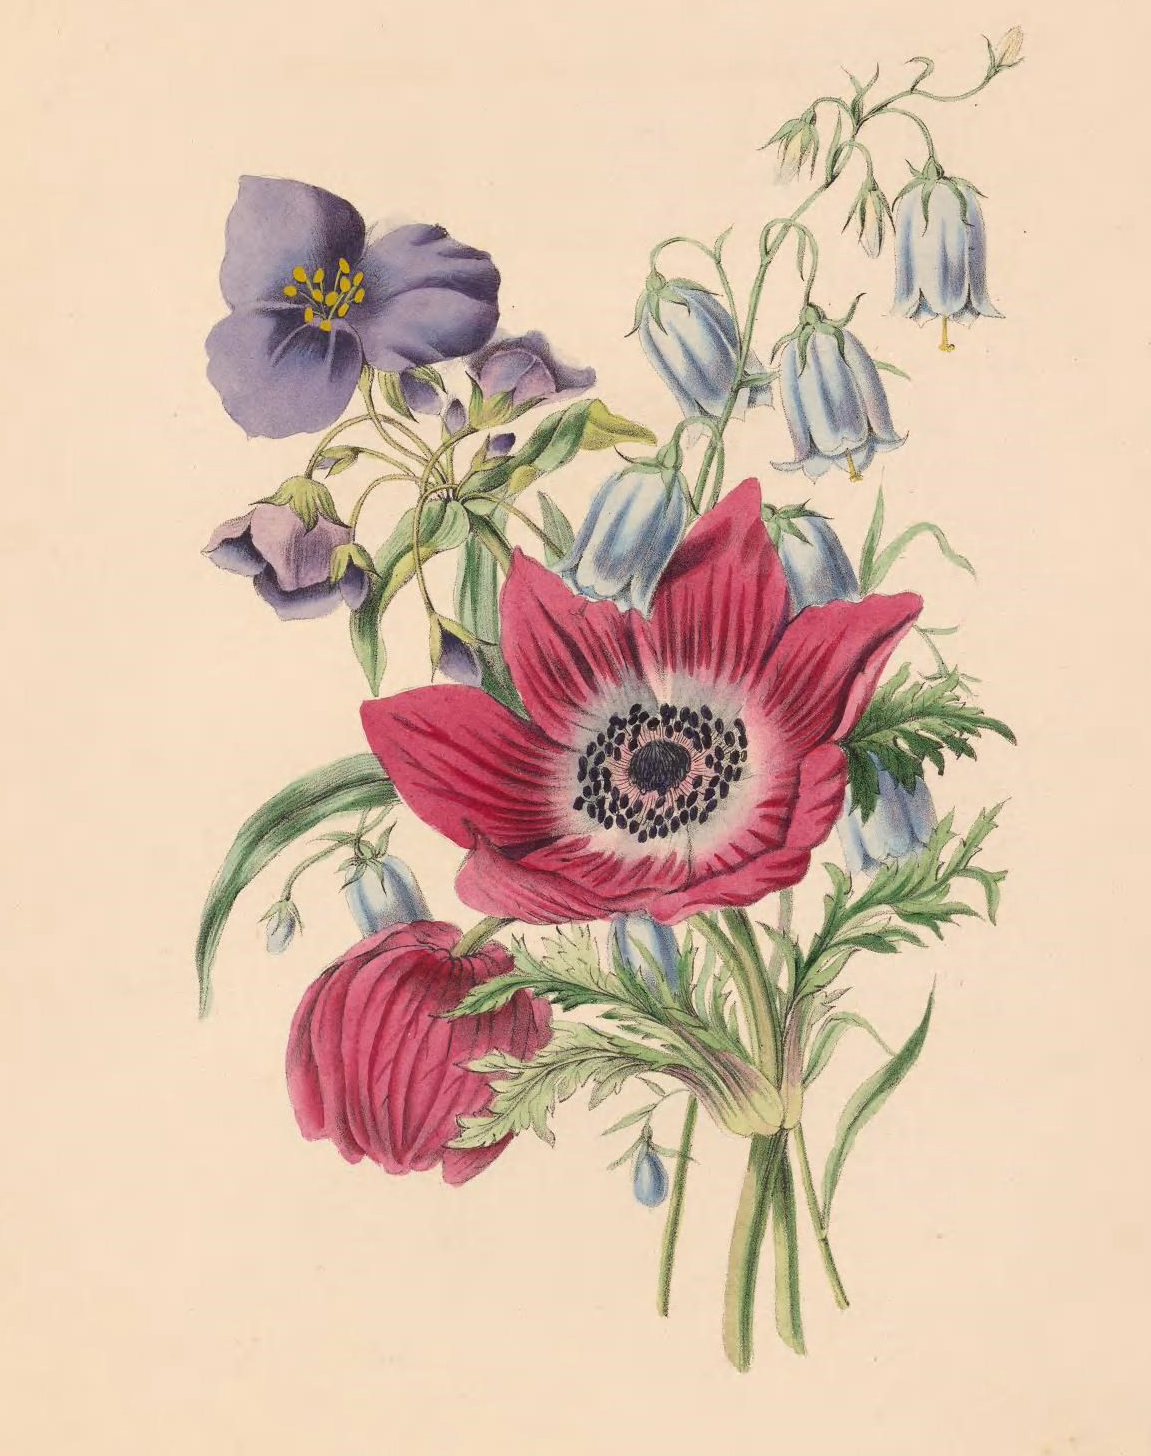 Anemone, Harebell, and Spiderwort.